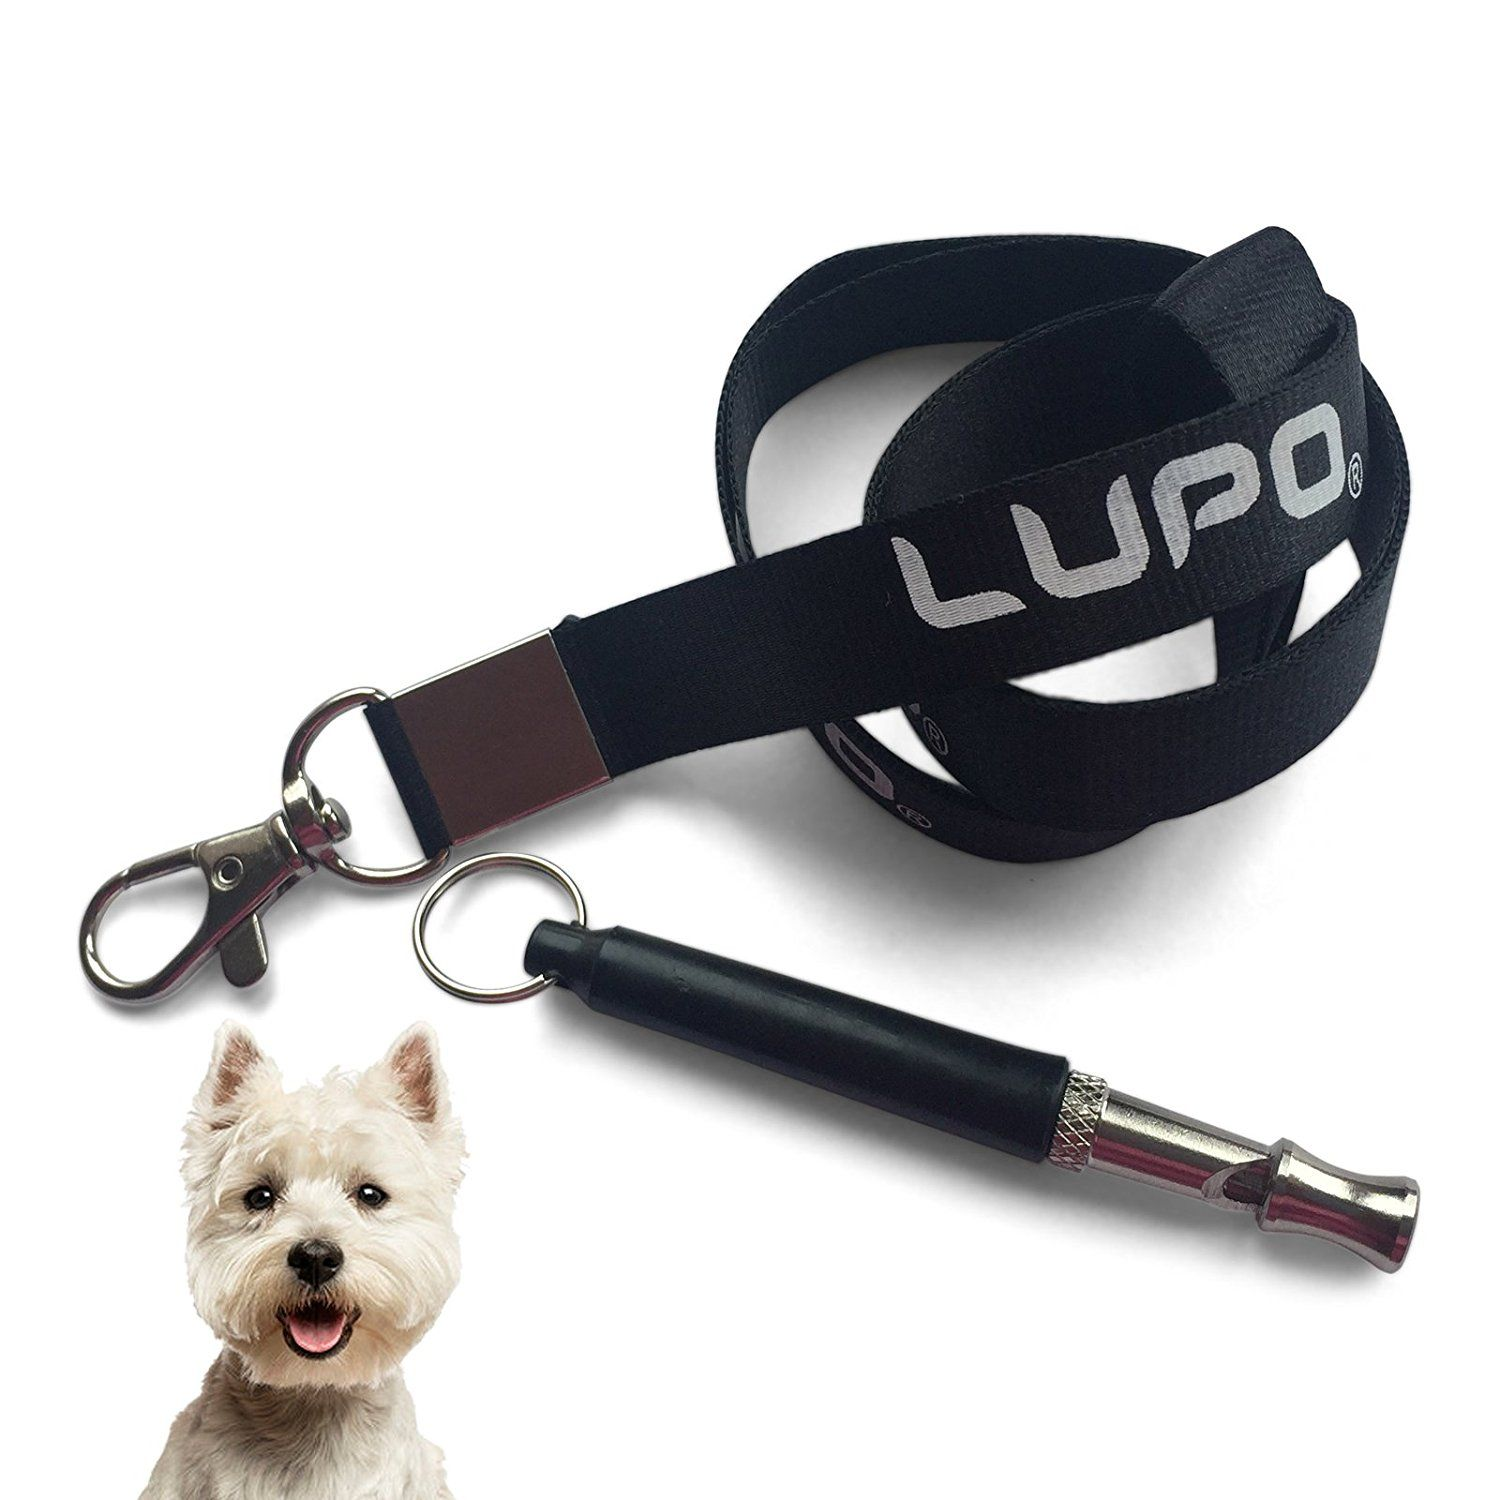 Lupo Dog Whistle To Stop Barking Bark Control For Dogs Sound